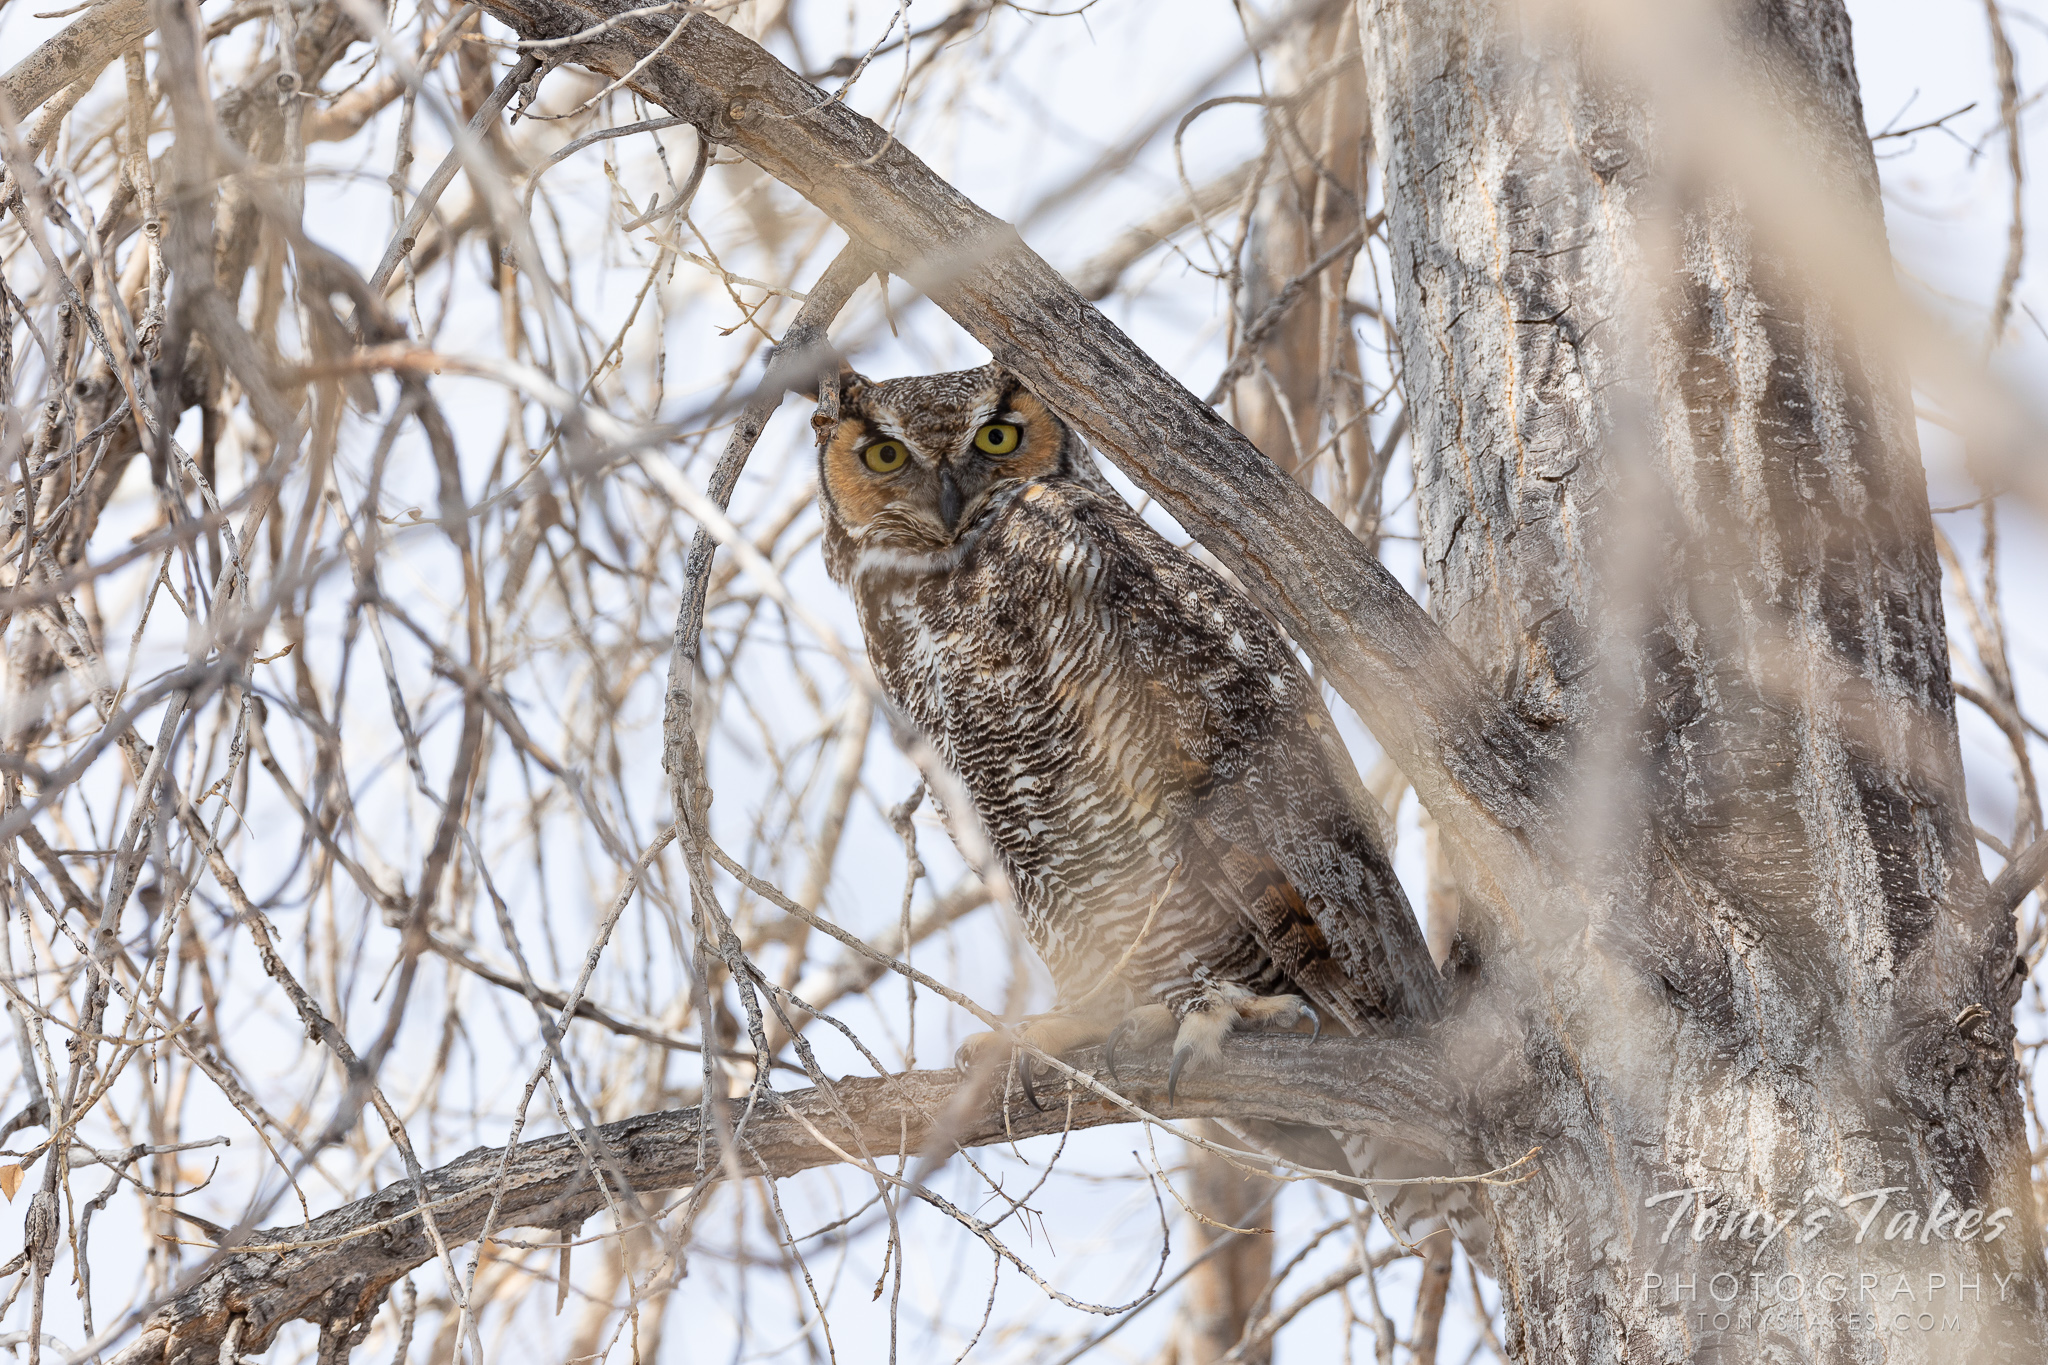 Suburban great horned owl keeps close watch